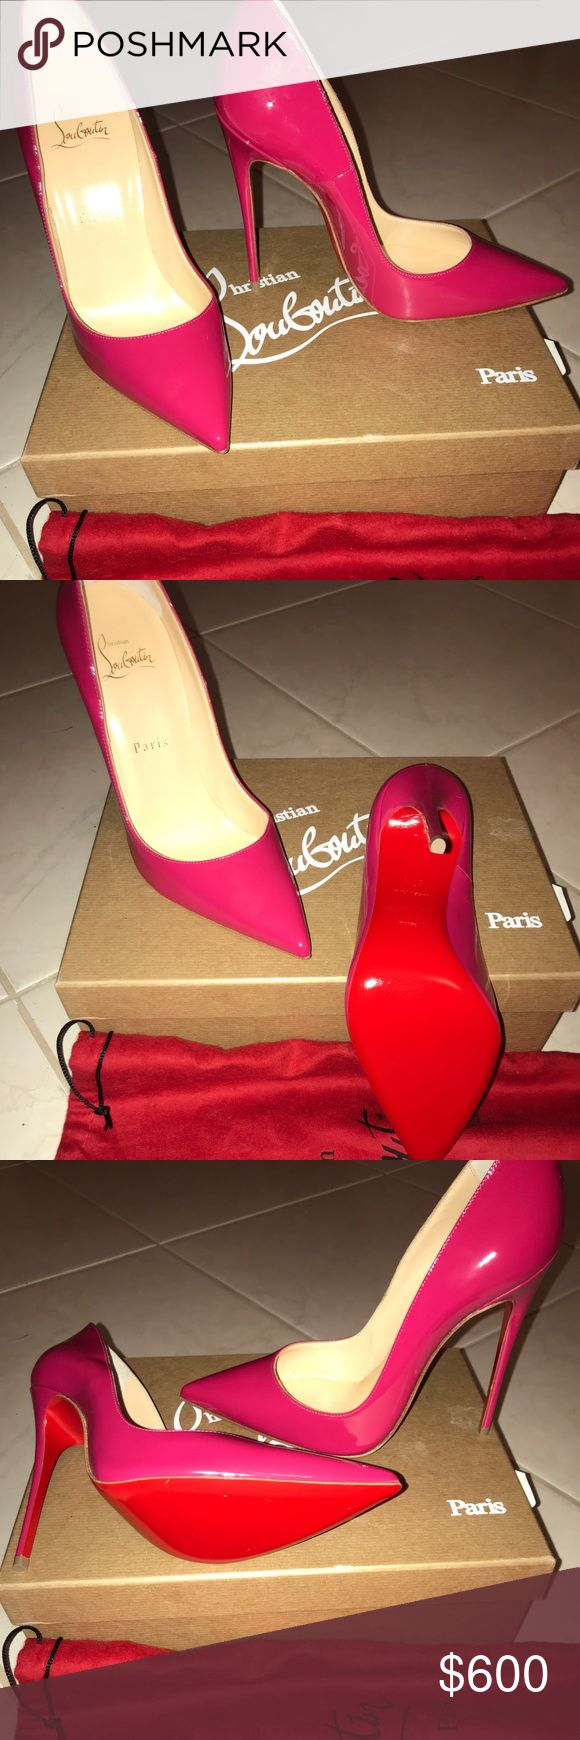 "Christian louboutin SO KATE  ""Brand New"" Rosa Brand New Christian louboutin  120 ""So Kate"" size 37 1/2.     Includes: Box, Dust Bag and extra heel stoppers Christian Louboutin Shoes Heels"